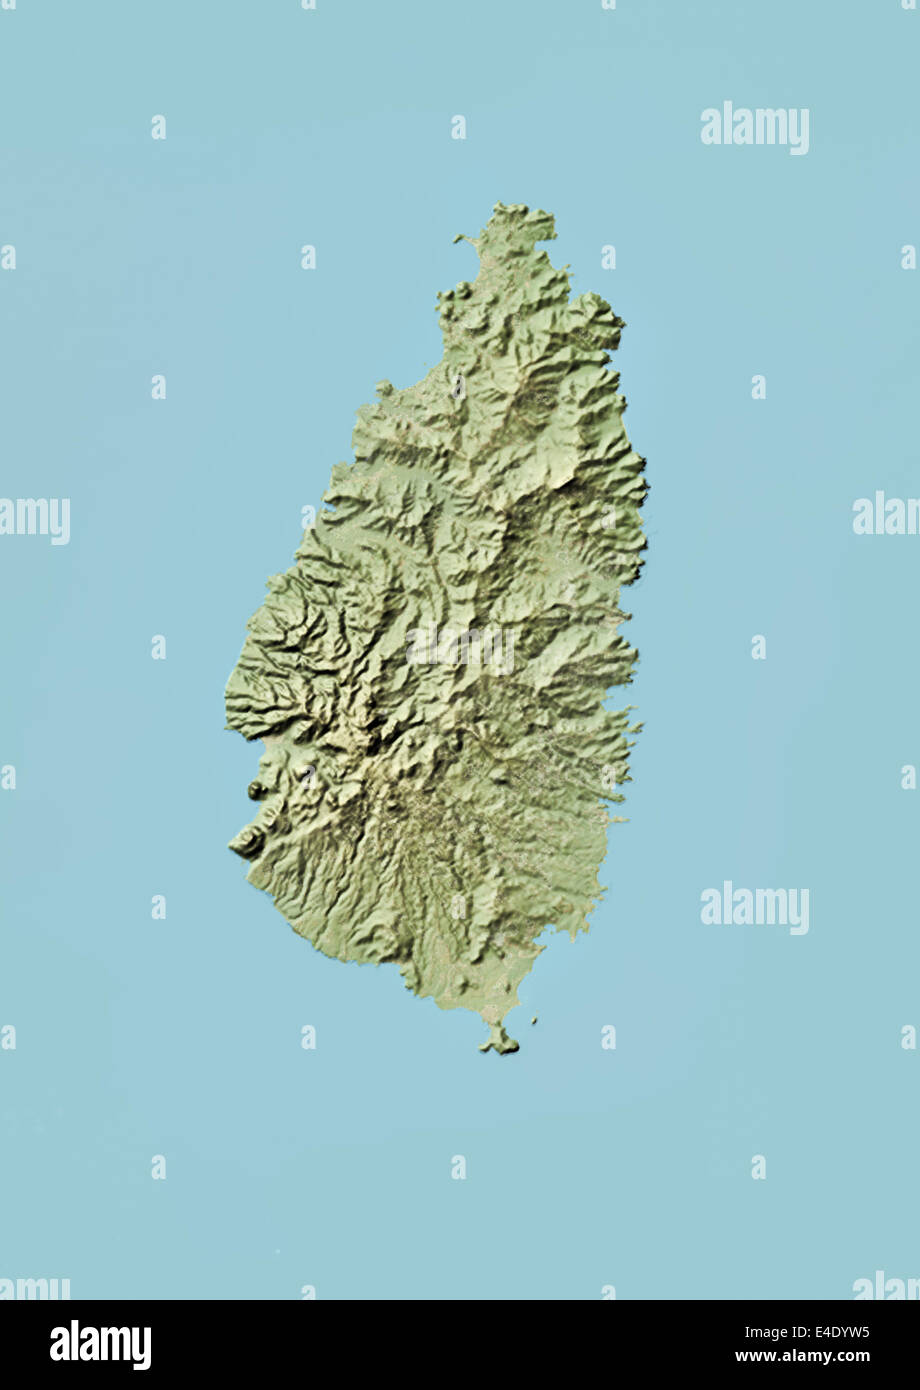 Topography And Saint Lucia Stock Photos & Topography And Saint Lucia ...